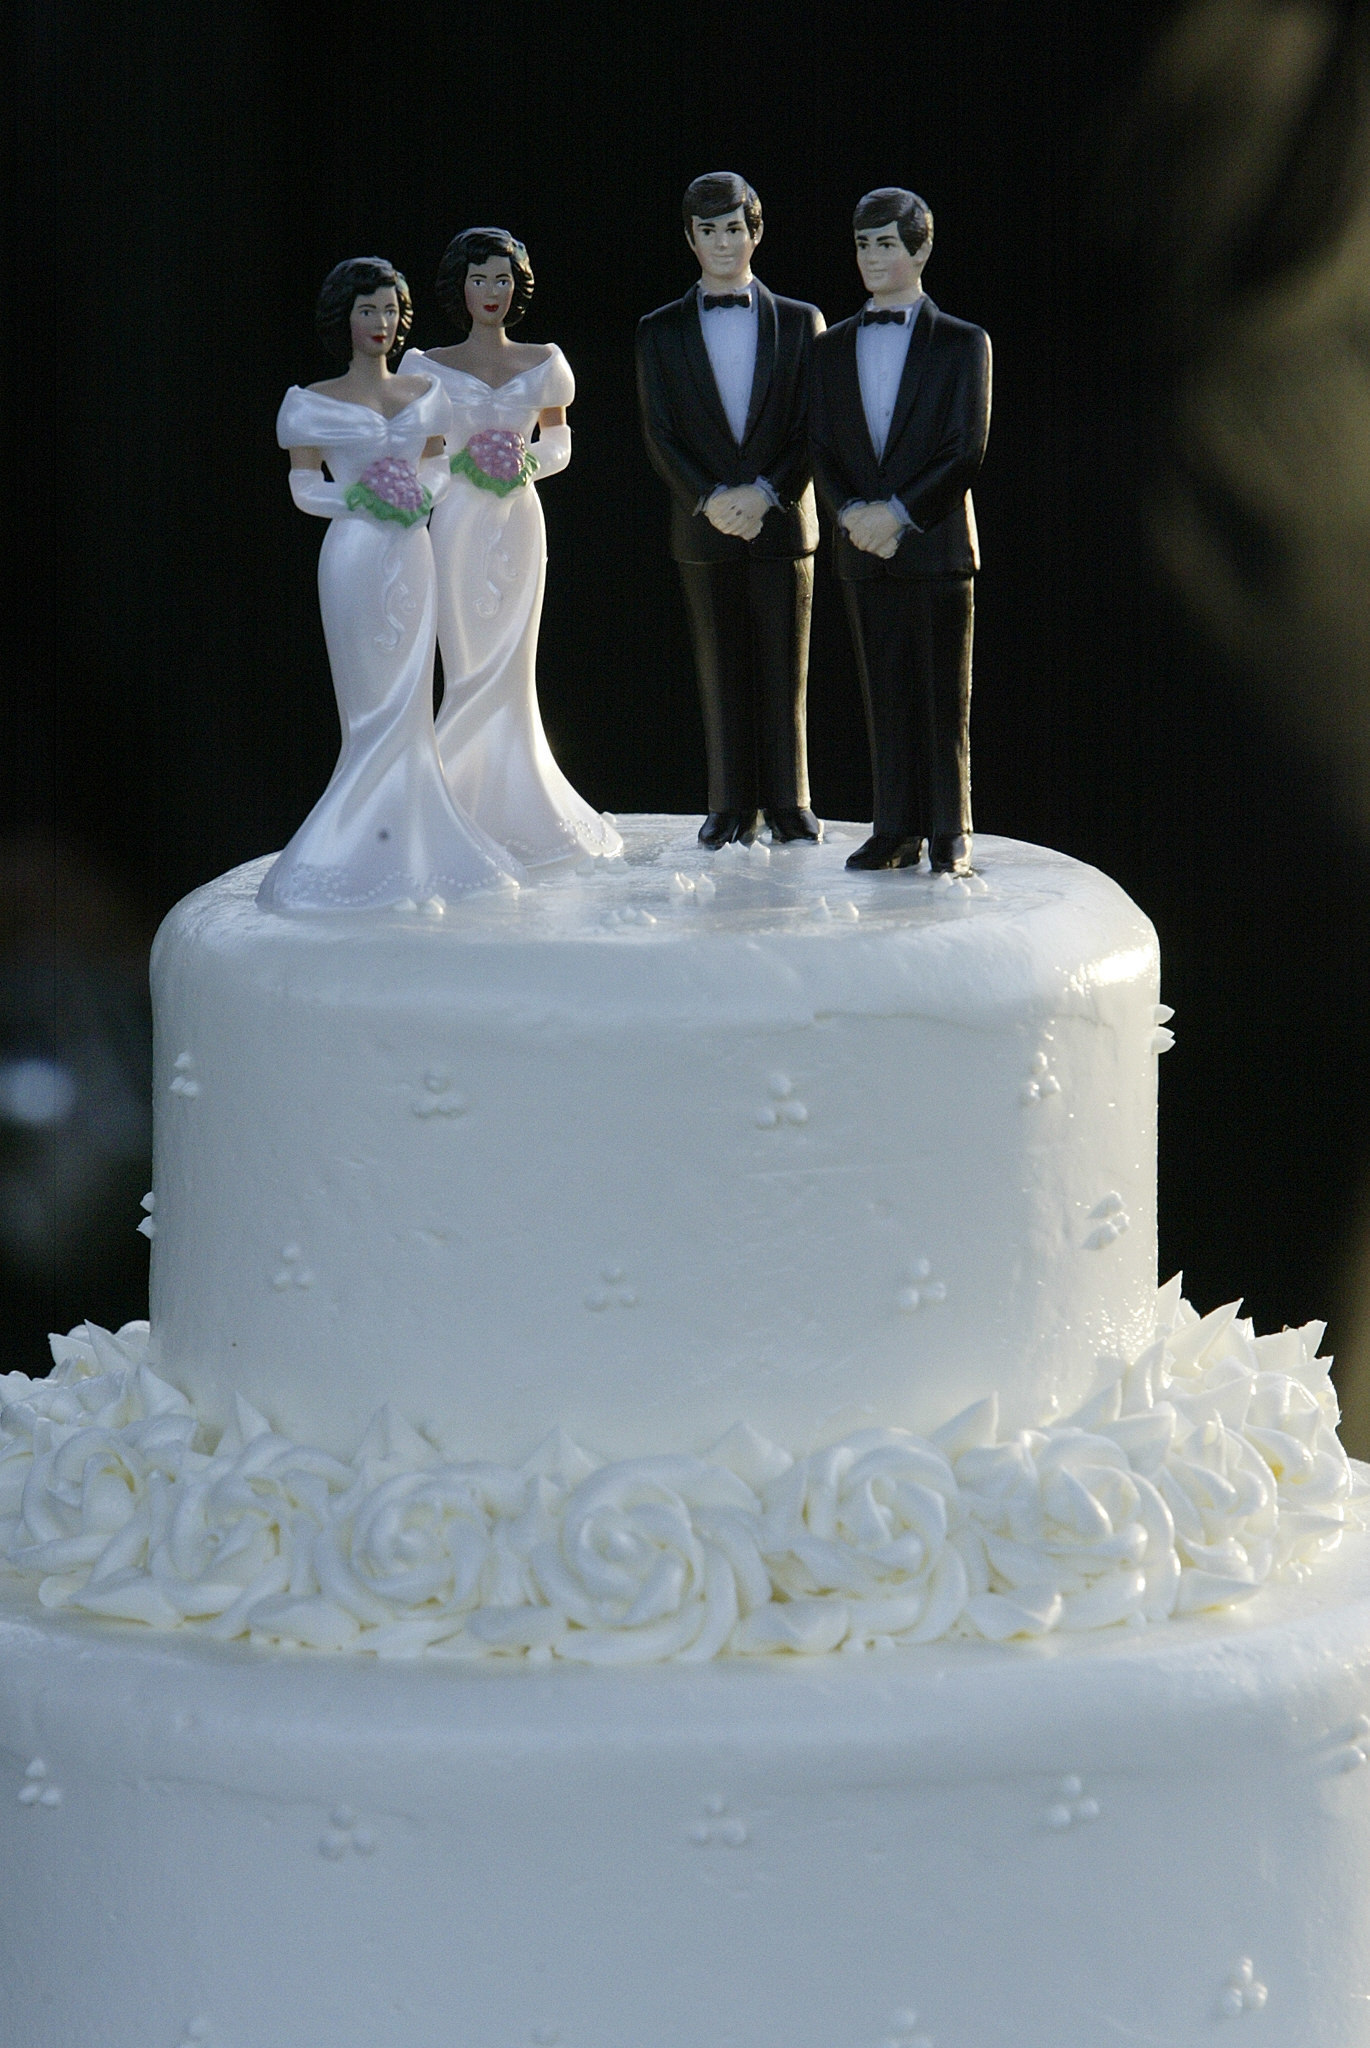 Wedding cake is artistic expression that baker may deny